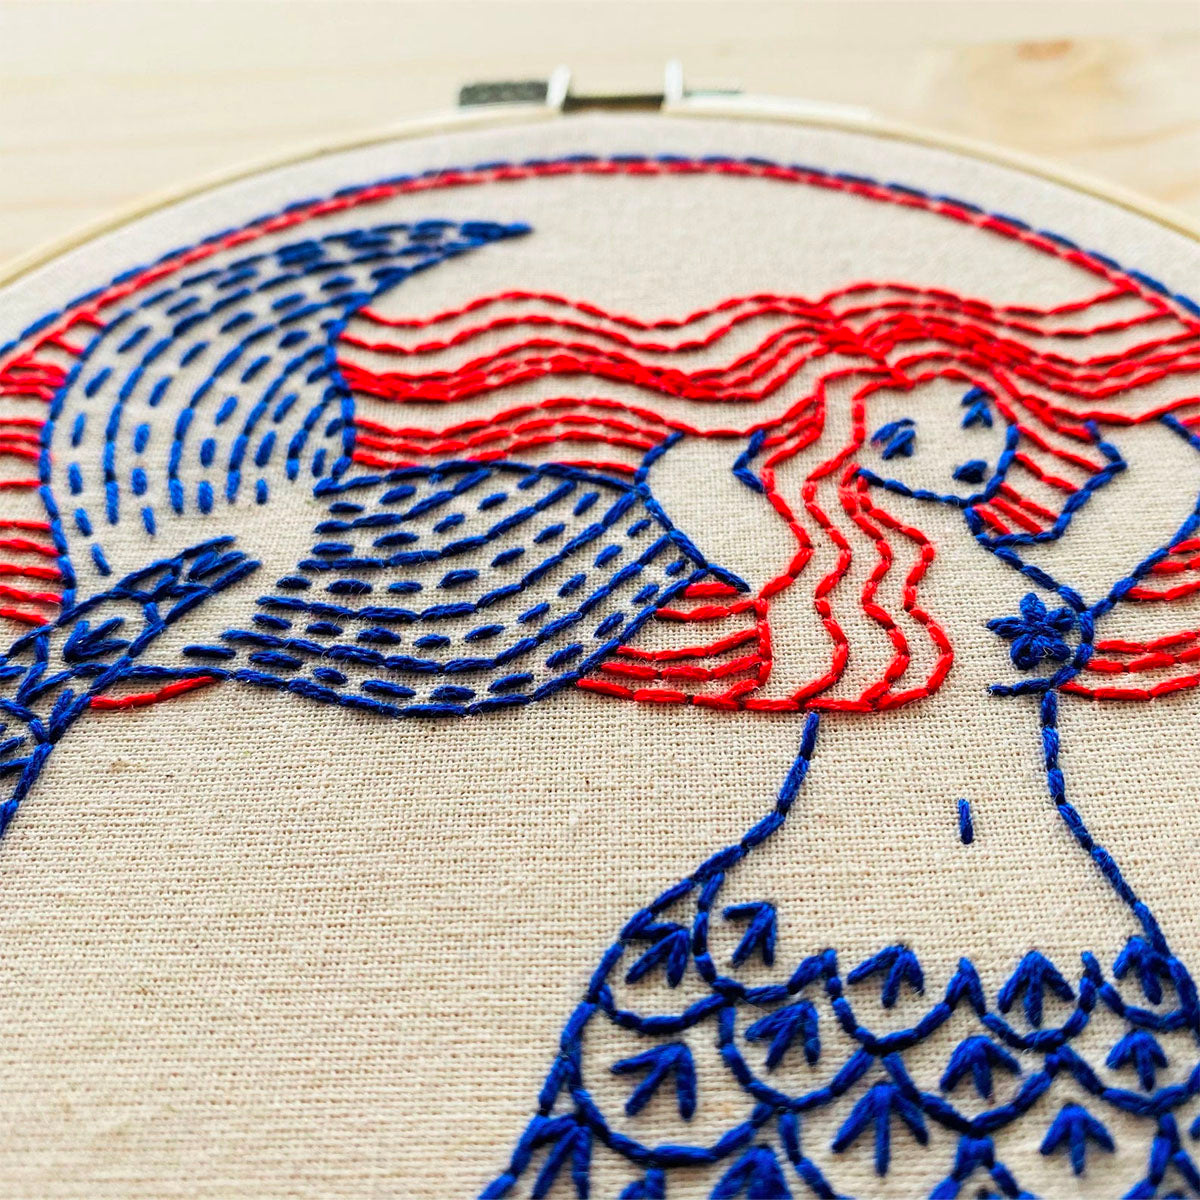 Mermaid Hair (Don't Care!) Hand Embroidery Kit